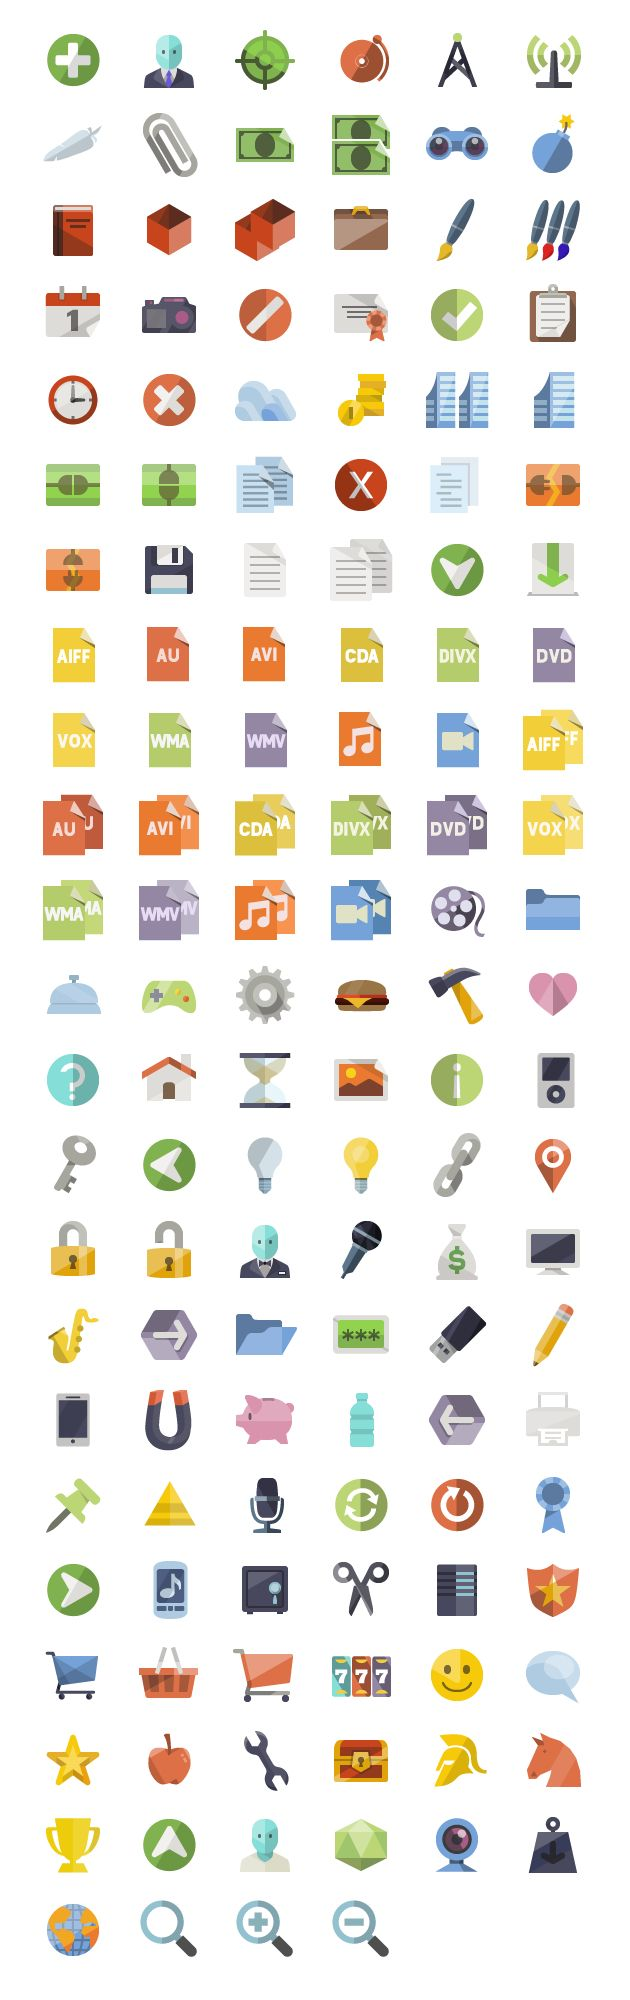 Over 3600 free Flat Icons for commercial or personal use